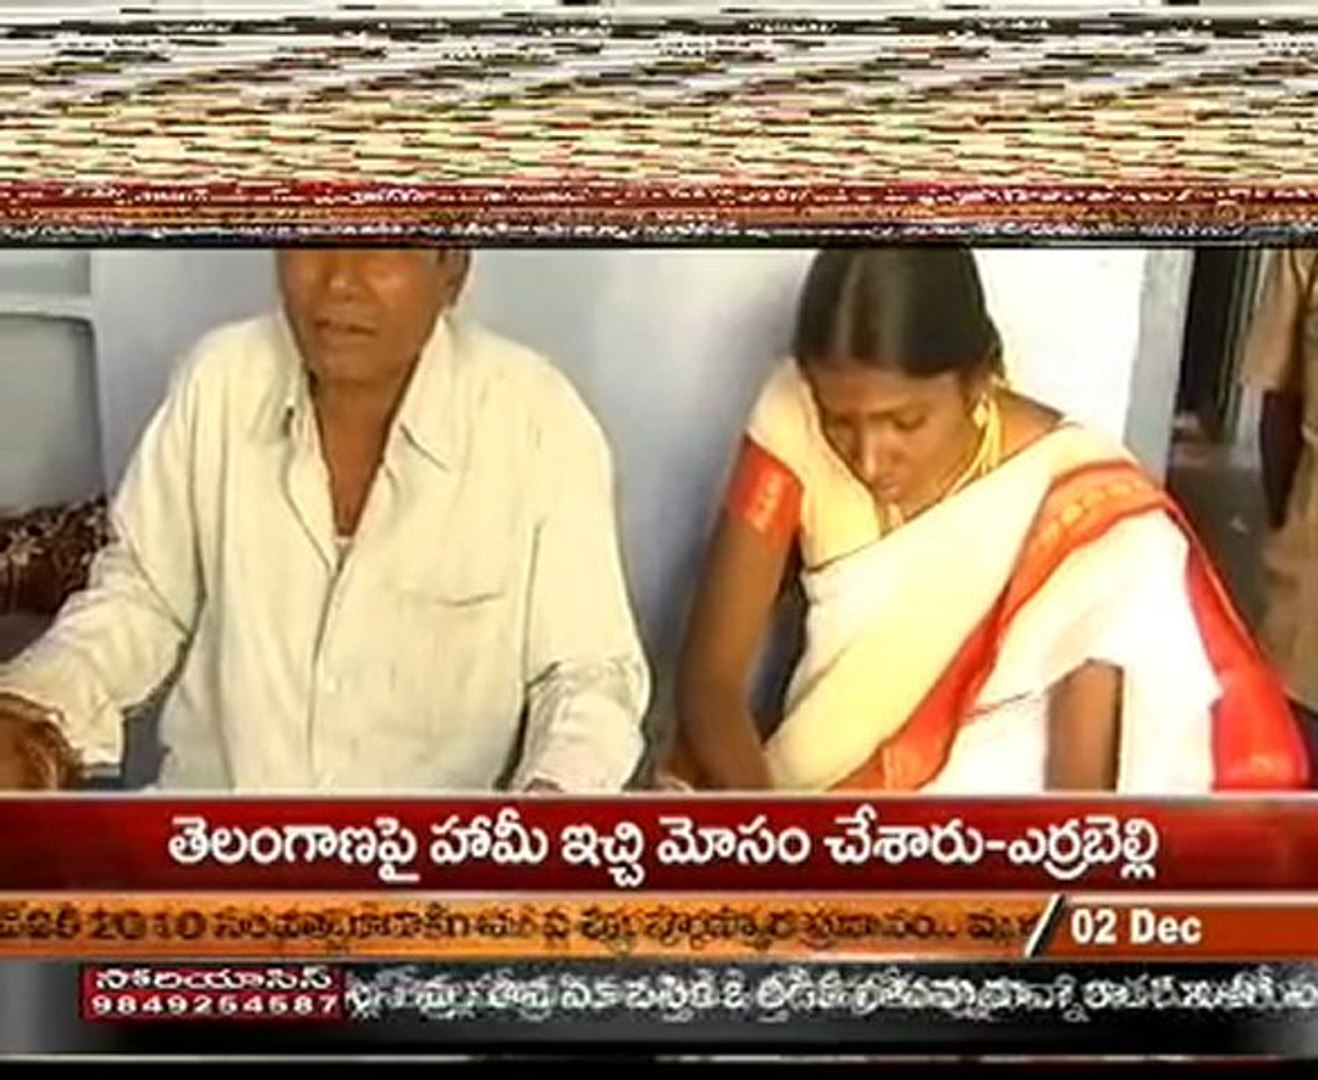 60-year-old man Married 20-year-old Lady